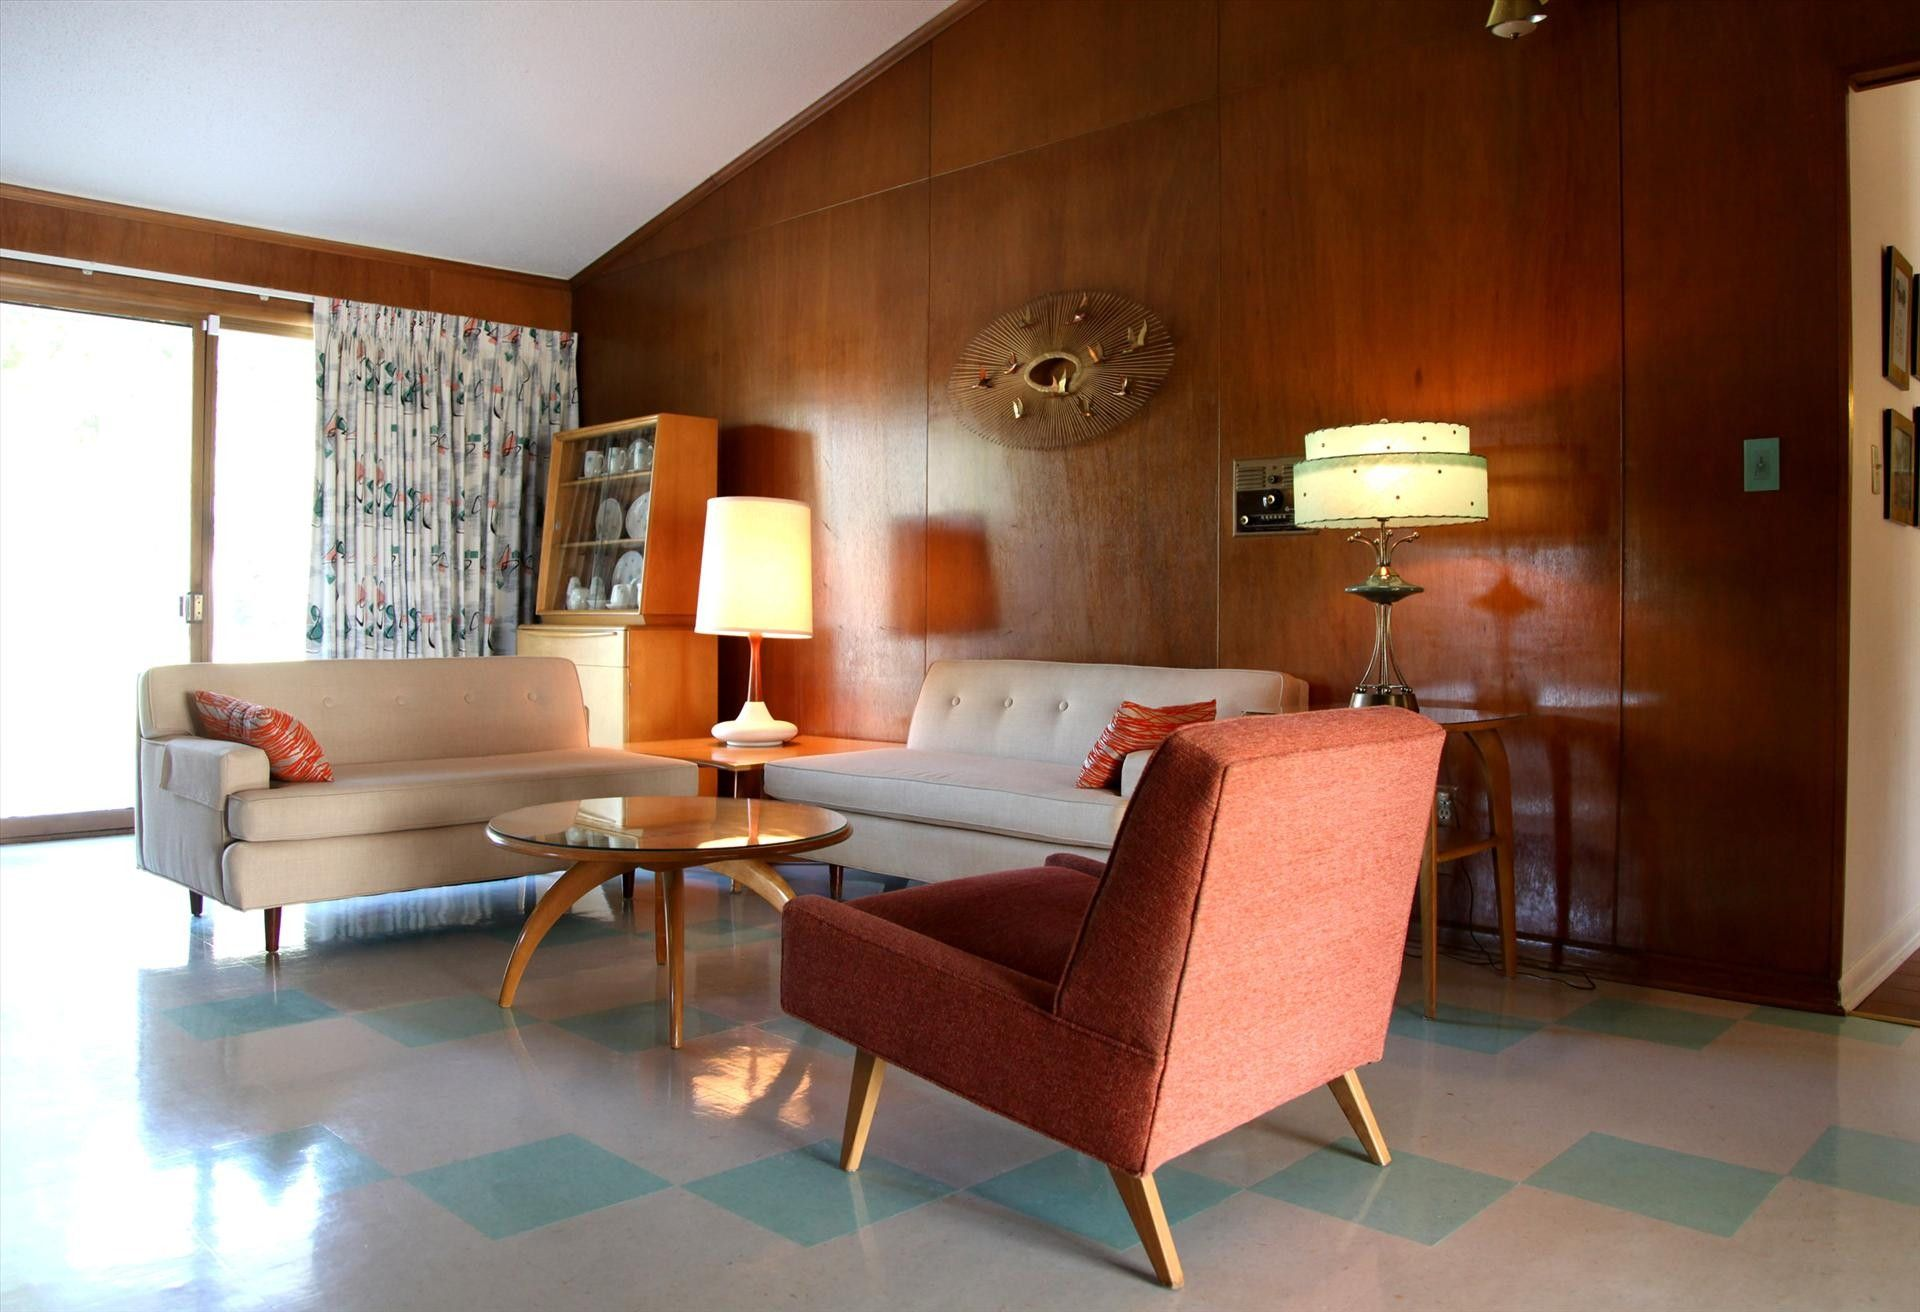 Restored 1950S Home In Tulsa Featured In New Book -